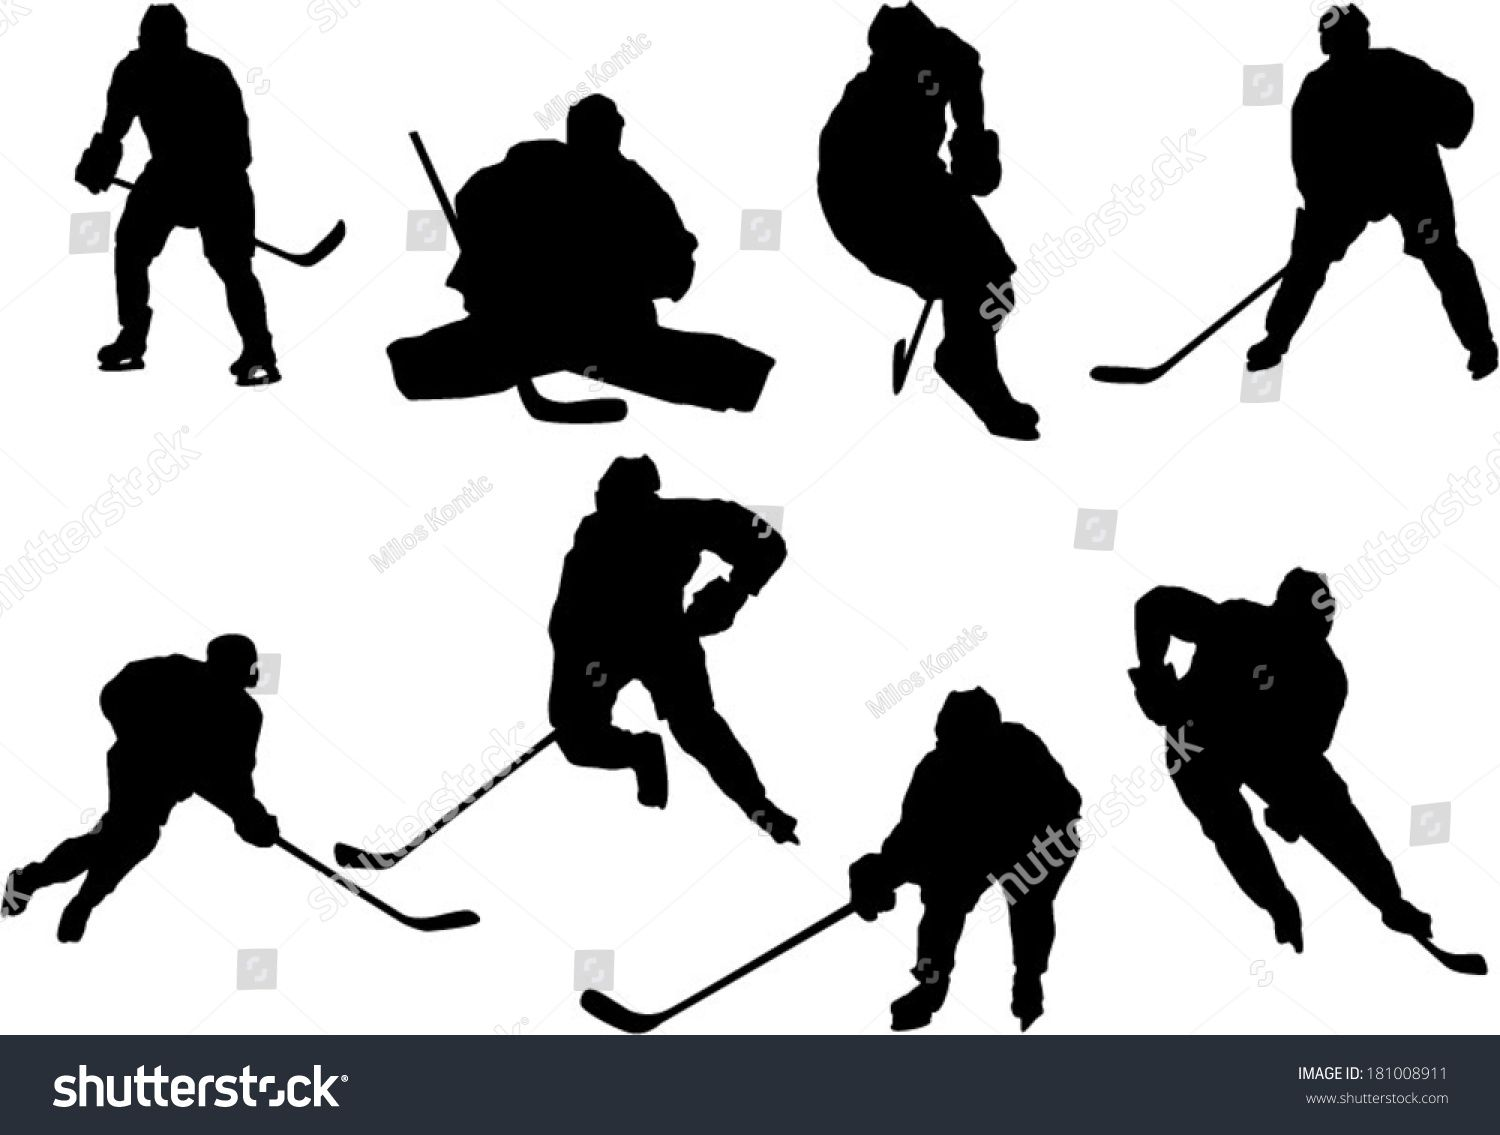 The Set Of Hockey Player Silhouettes Ad Affiliate Hockey Set Silhouettes Player In 2020 Hockey Players Silhouette Players